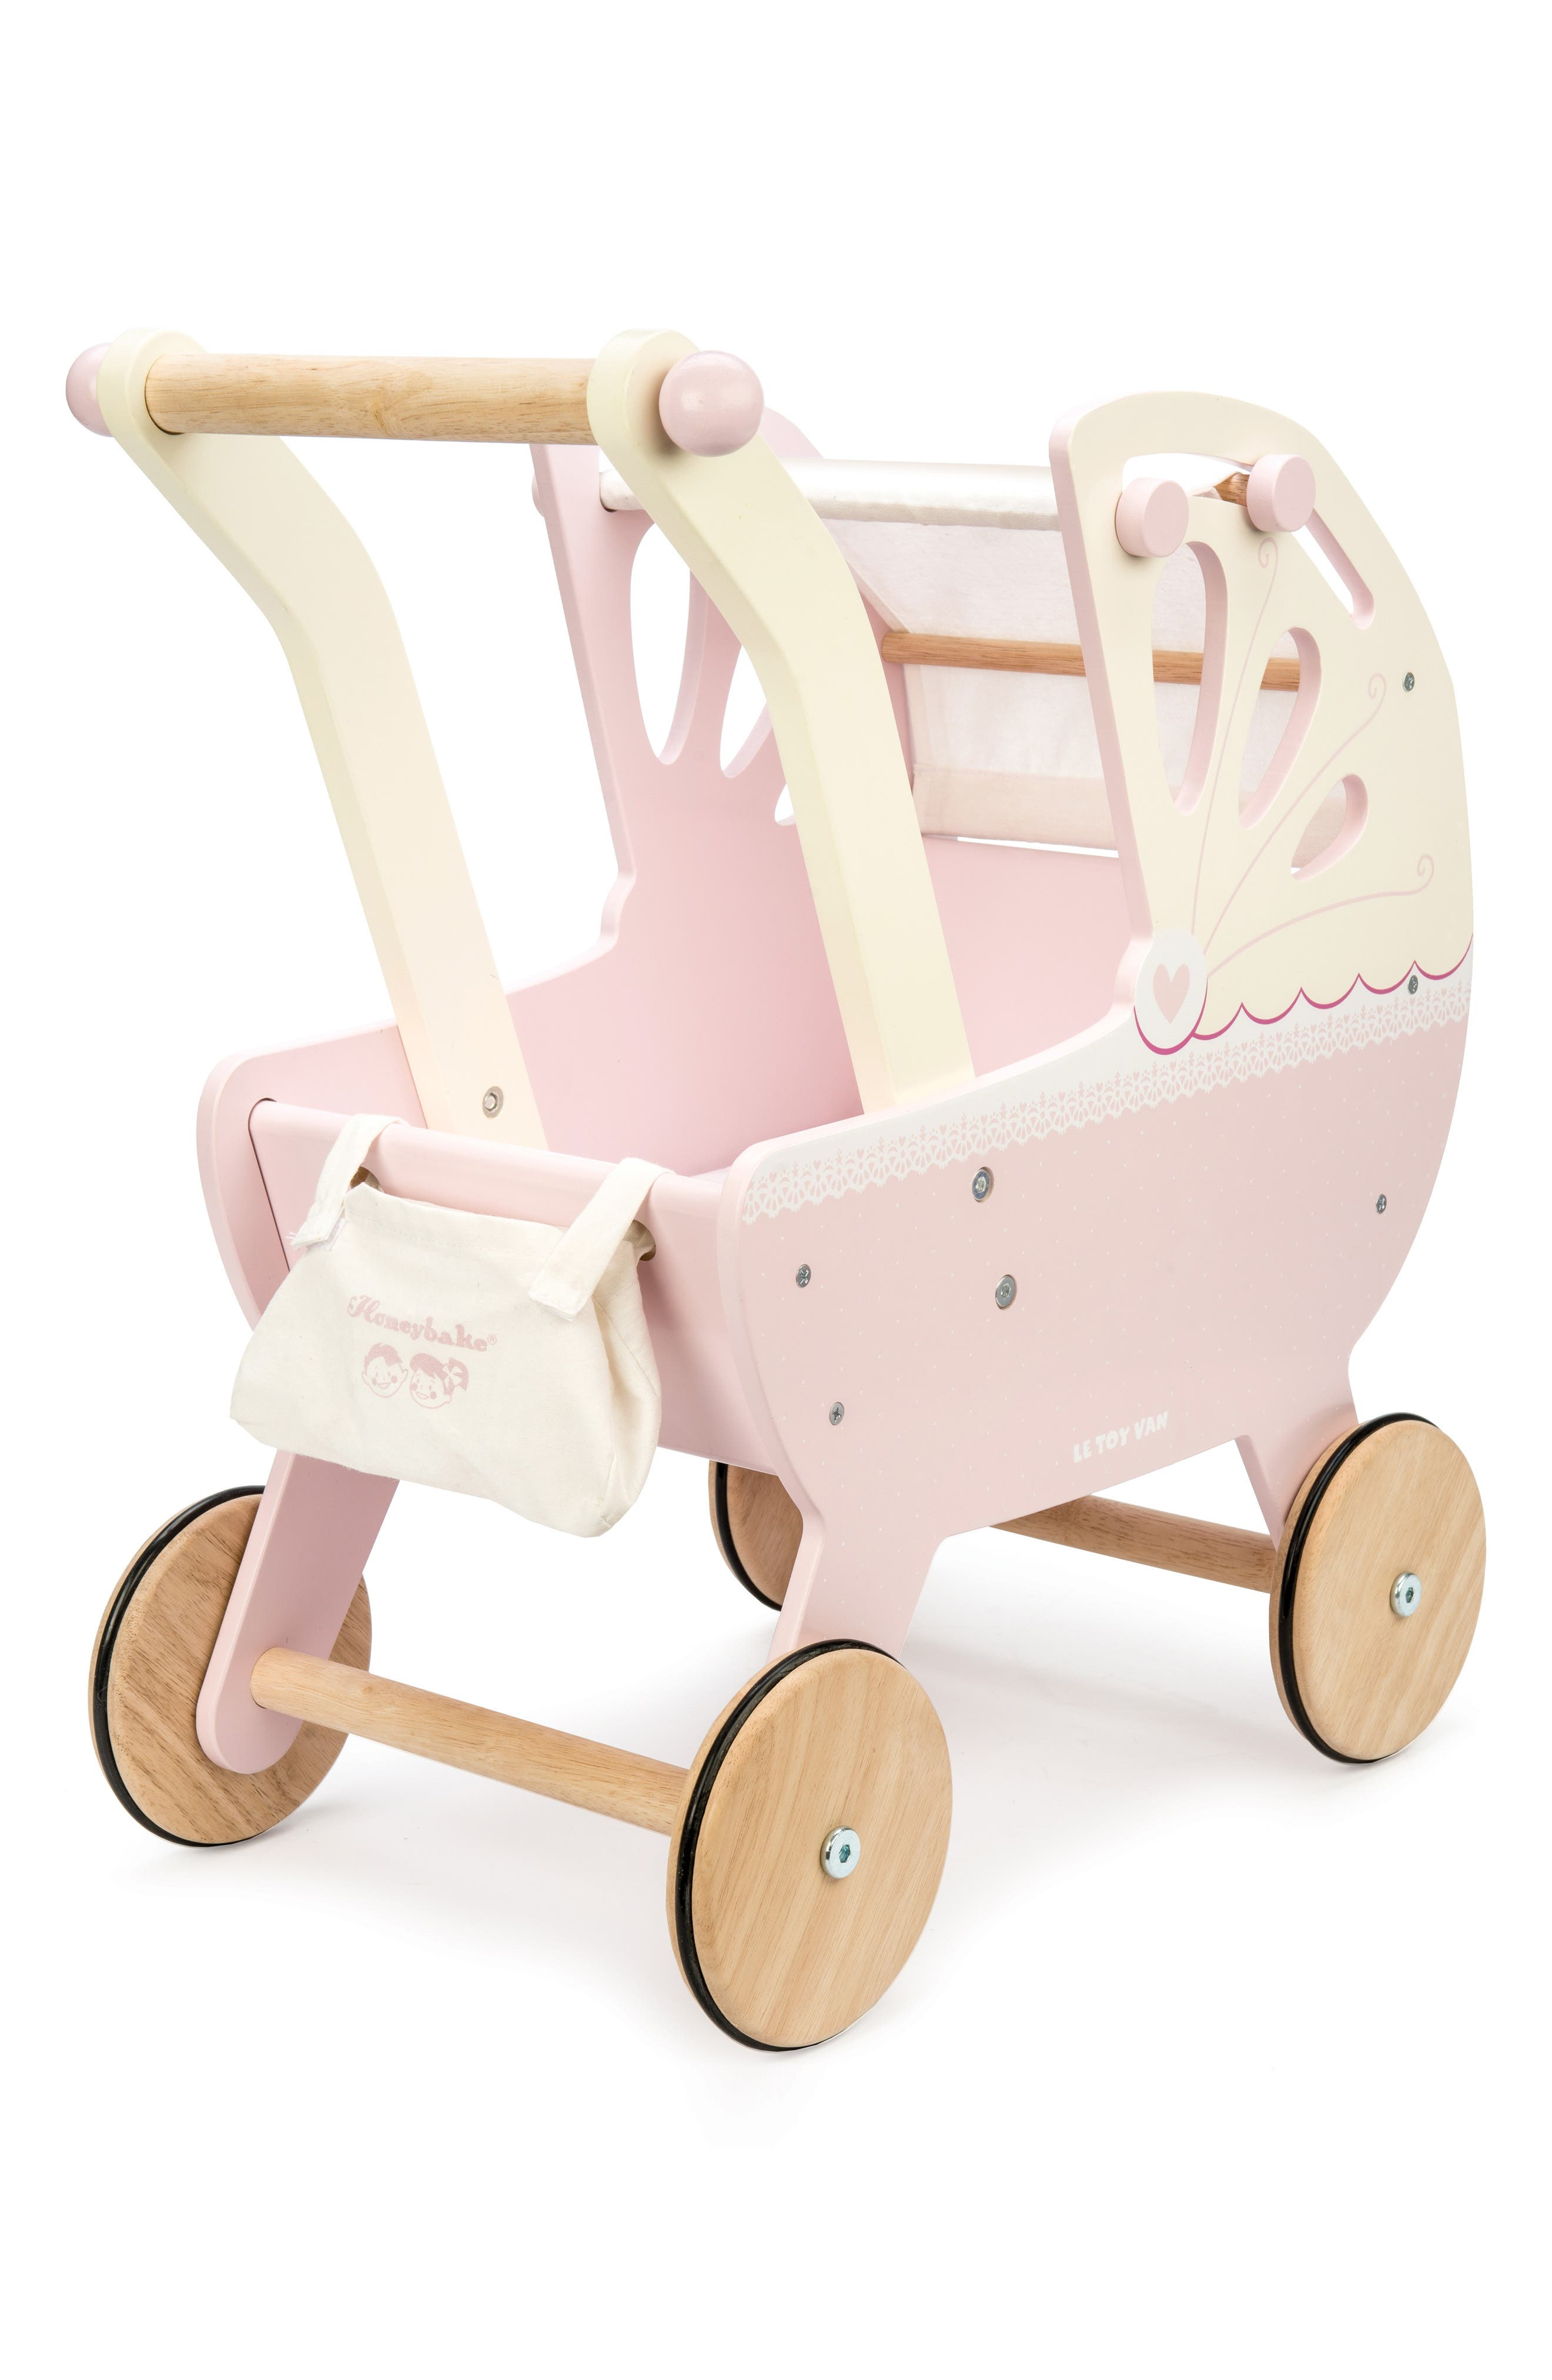 Adorned with charming hearts and fanciful lace-inspired details, a classic pram is perfect for strolling with either dolls or stuffed animals in tow. Style Name: Le Toy Van Sweet Dreams Pram. Style Number: 6124947. Available in stores.